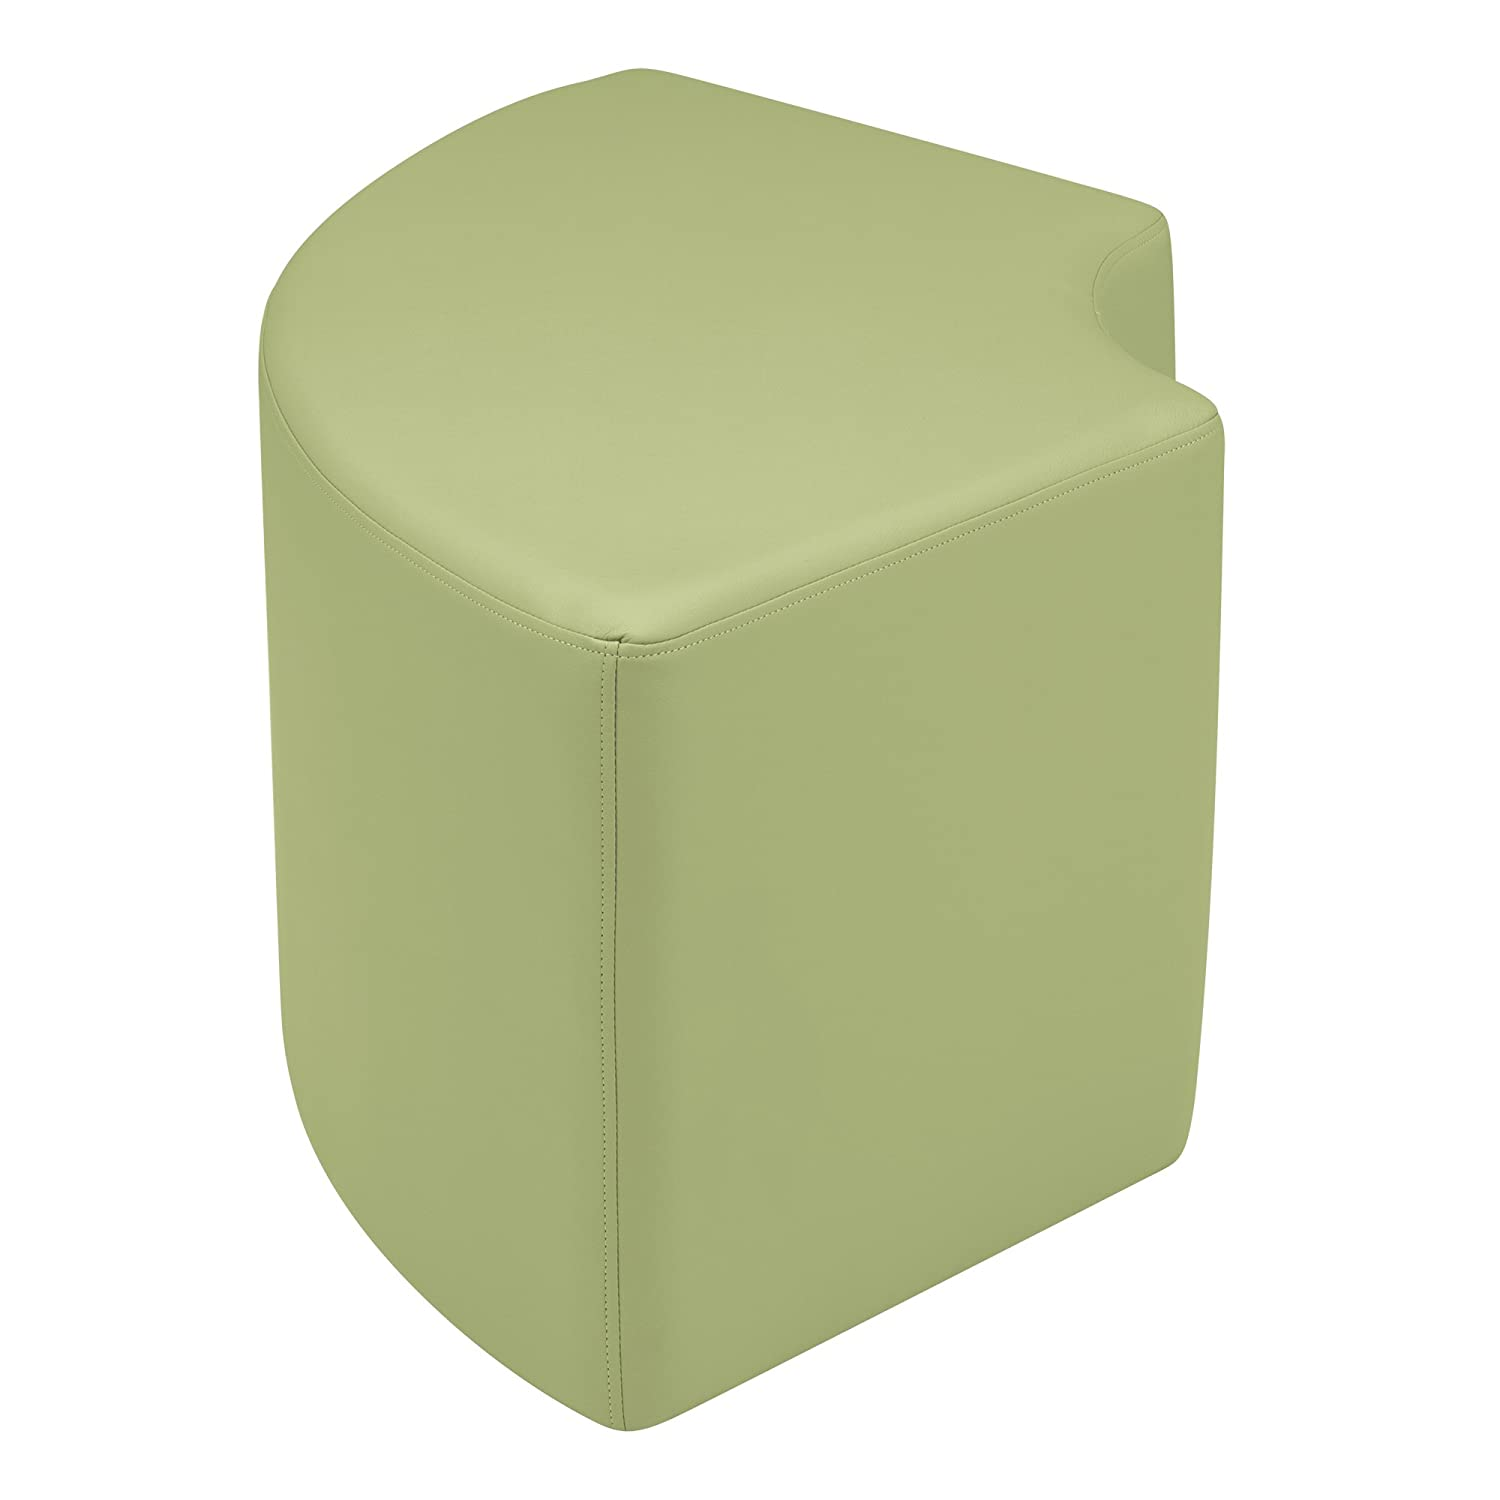 Learniture Shapes Vinyl Soft Seating 1//4 Round 18